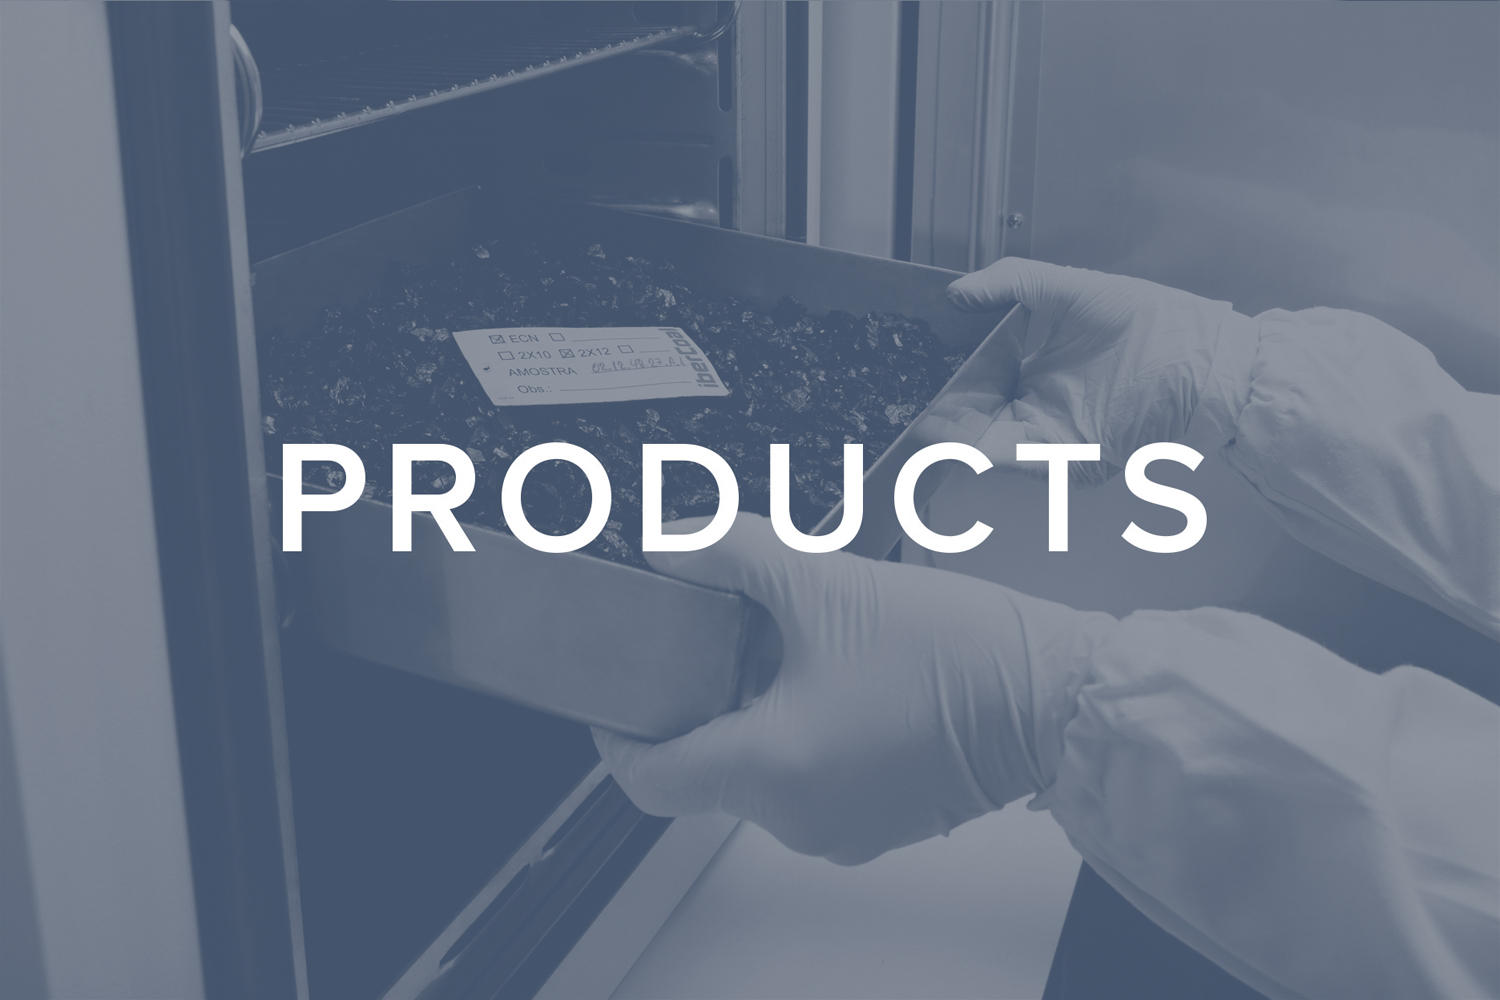 products-05.jpg